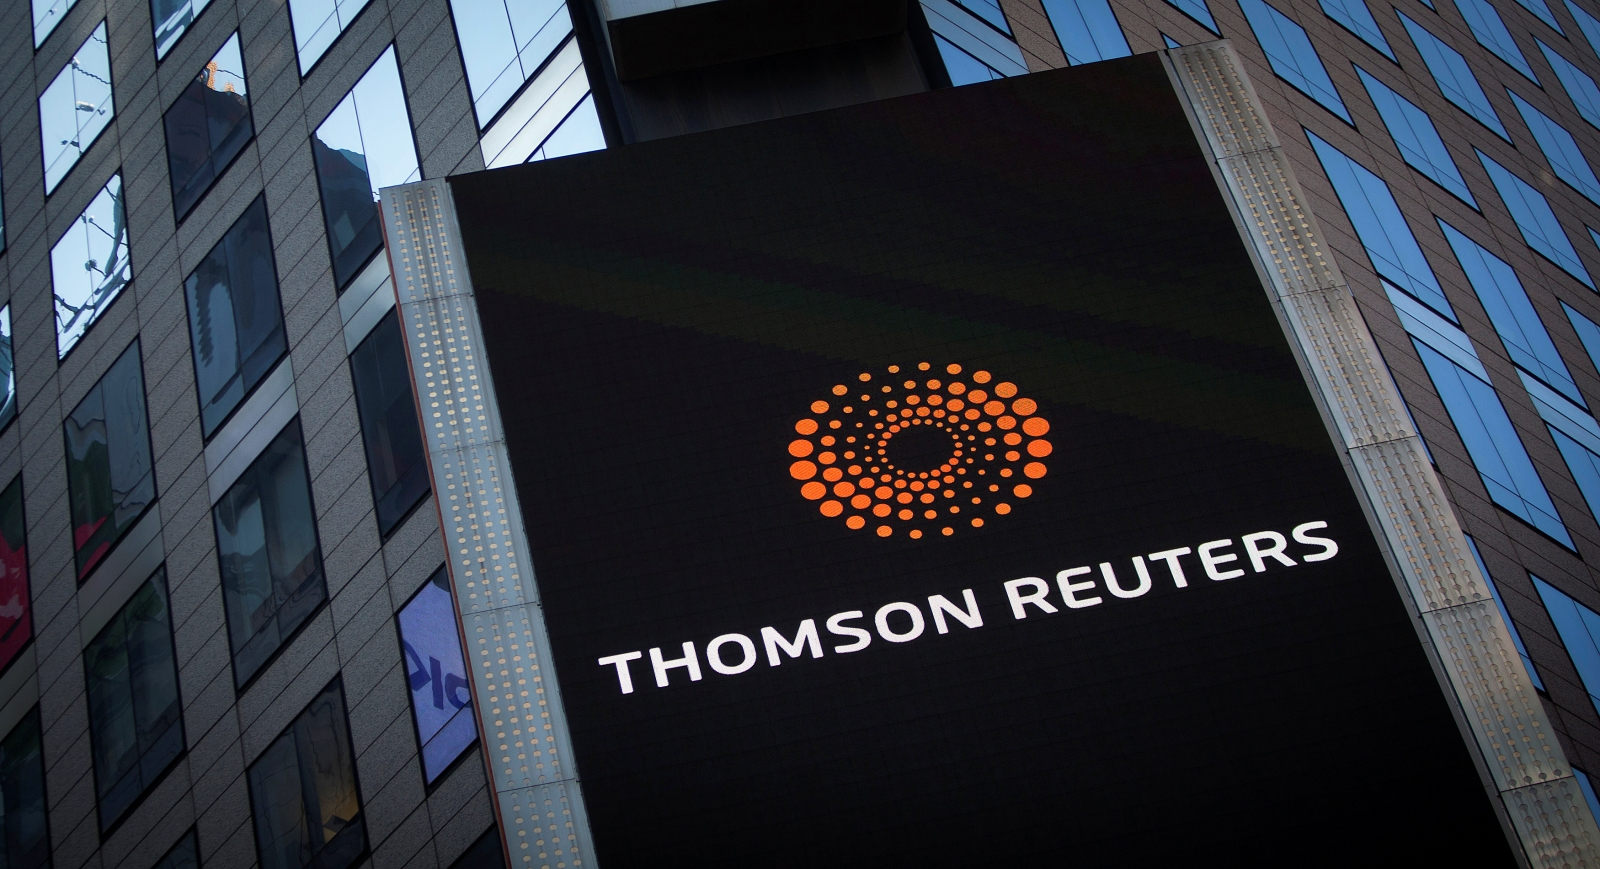 Journalist jobs to go at Reuters news agency